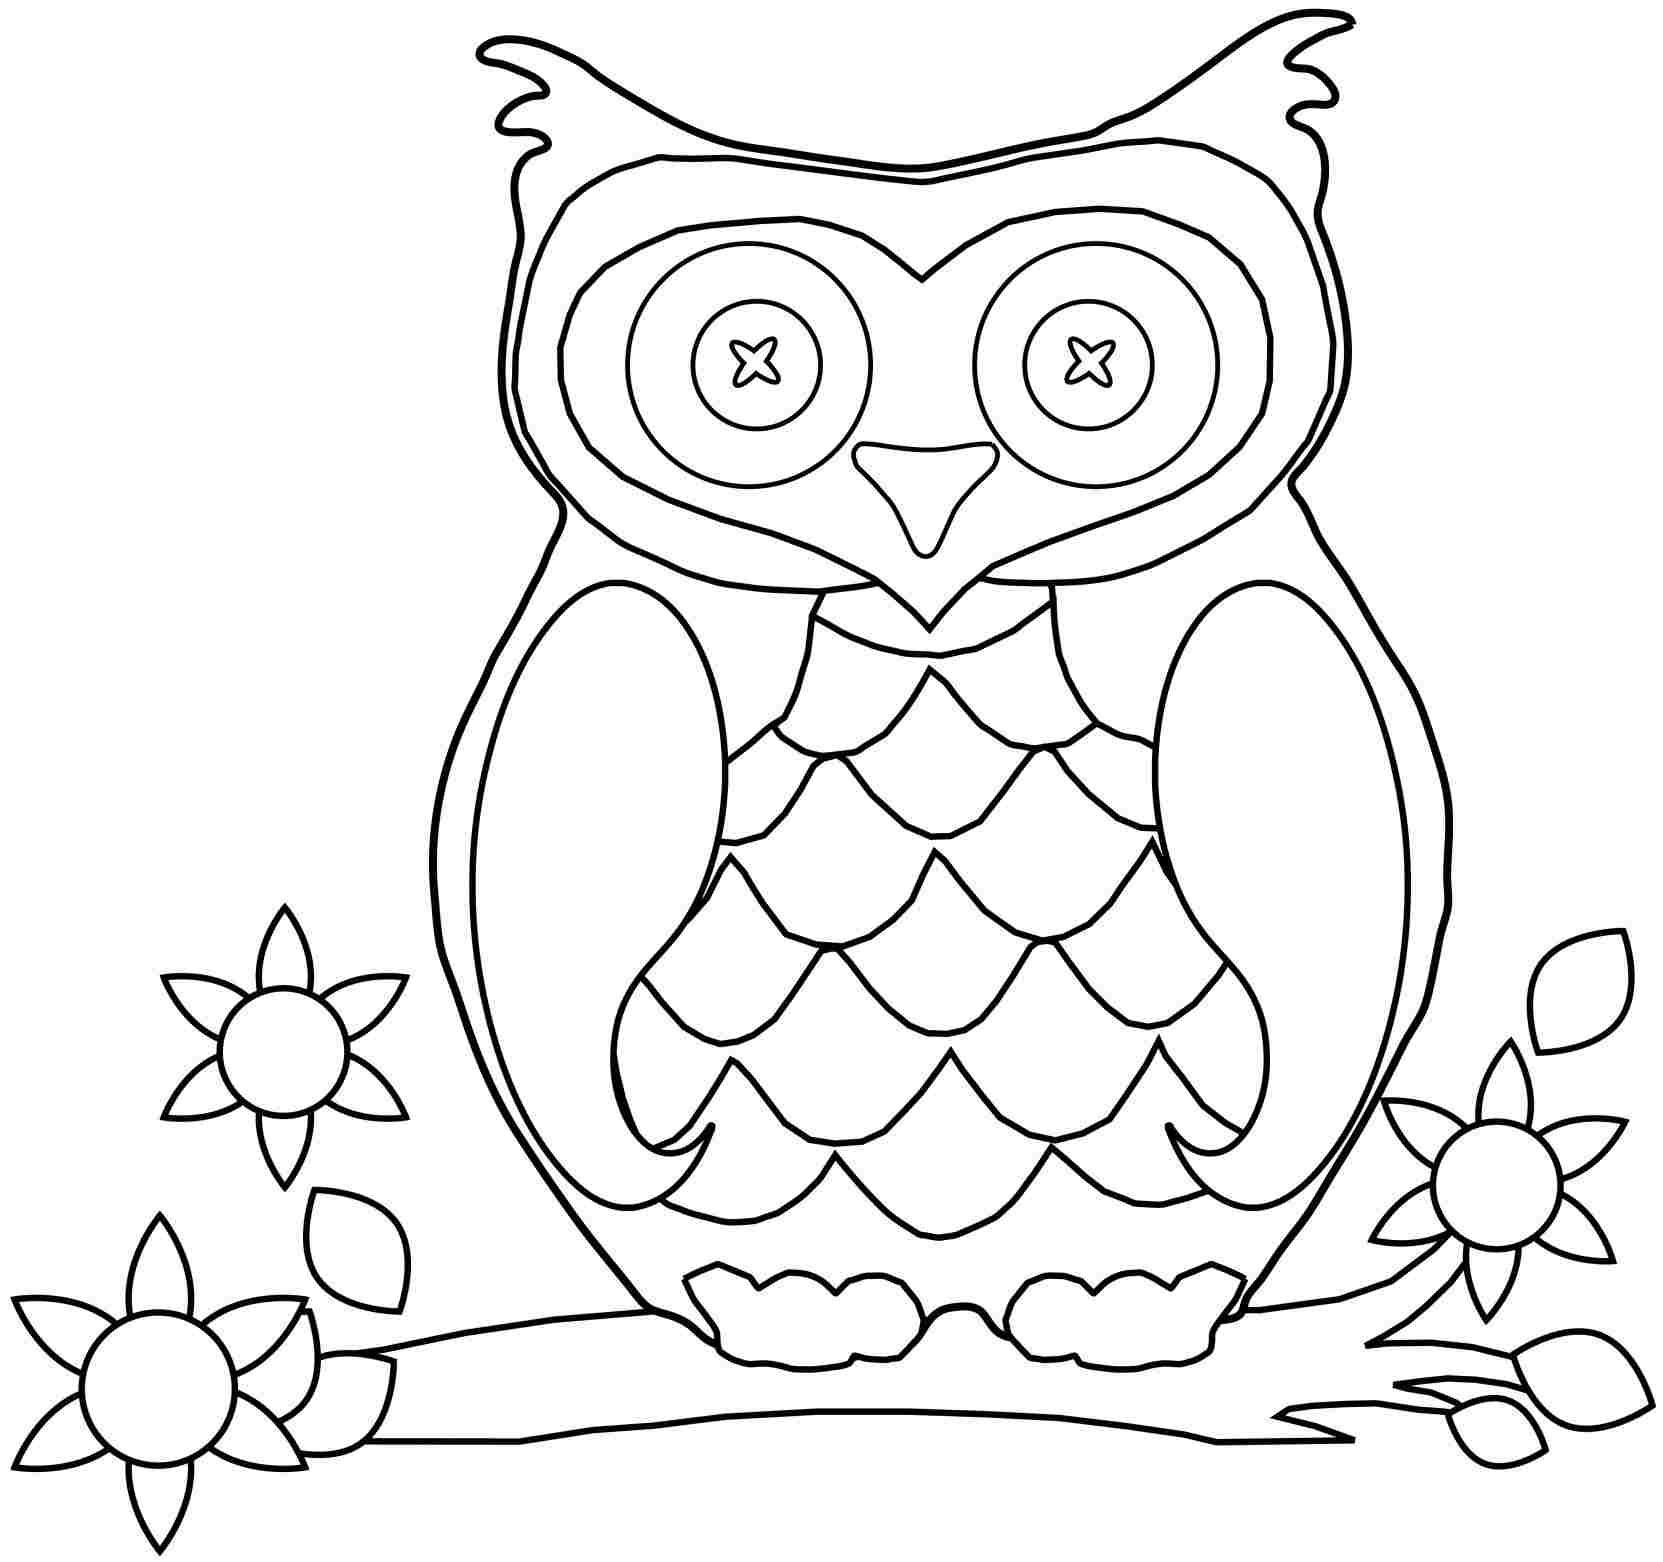 owl-coloring-page-0031-q1